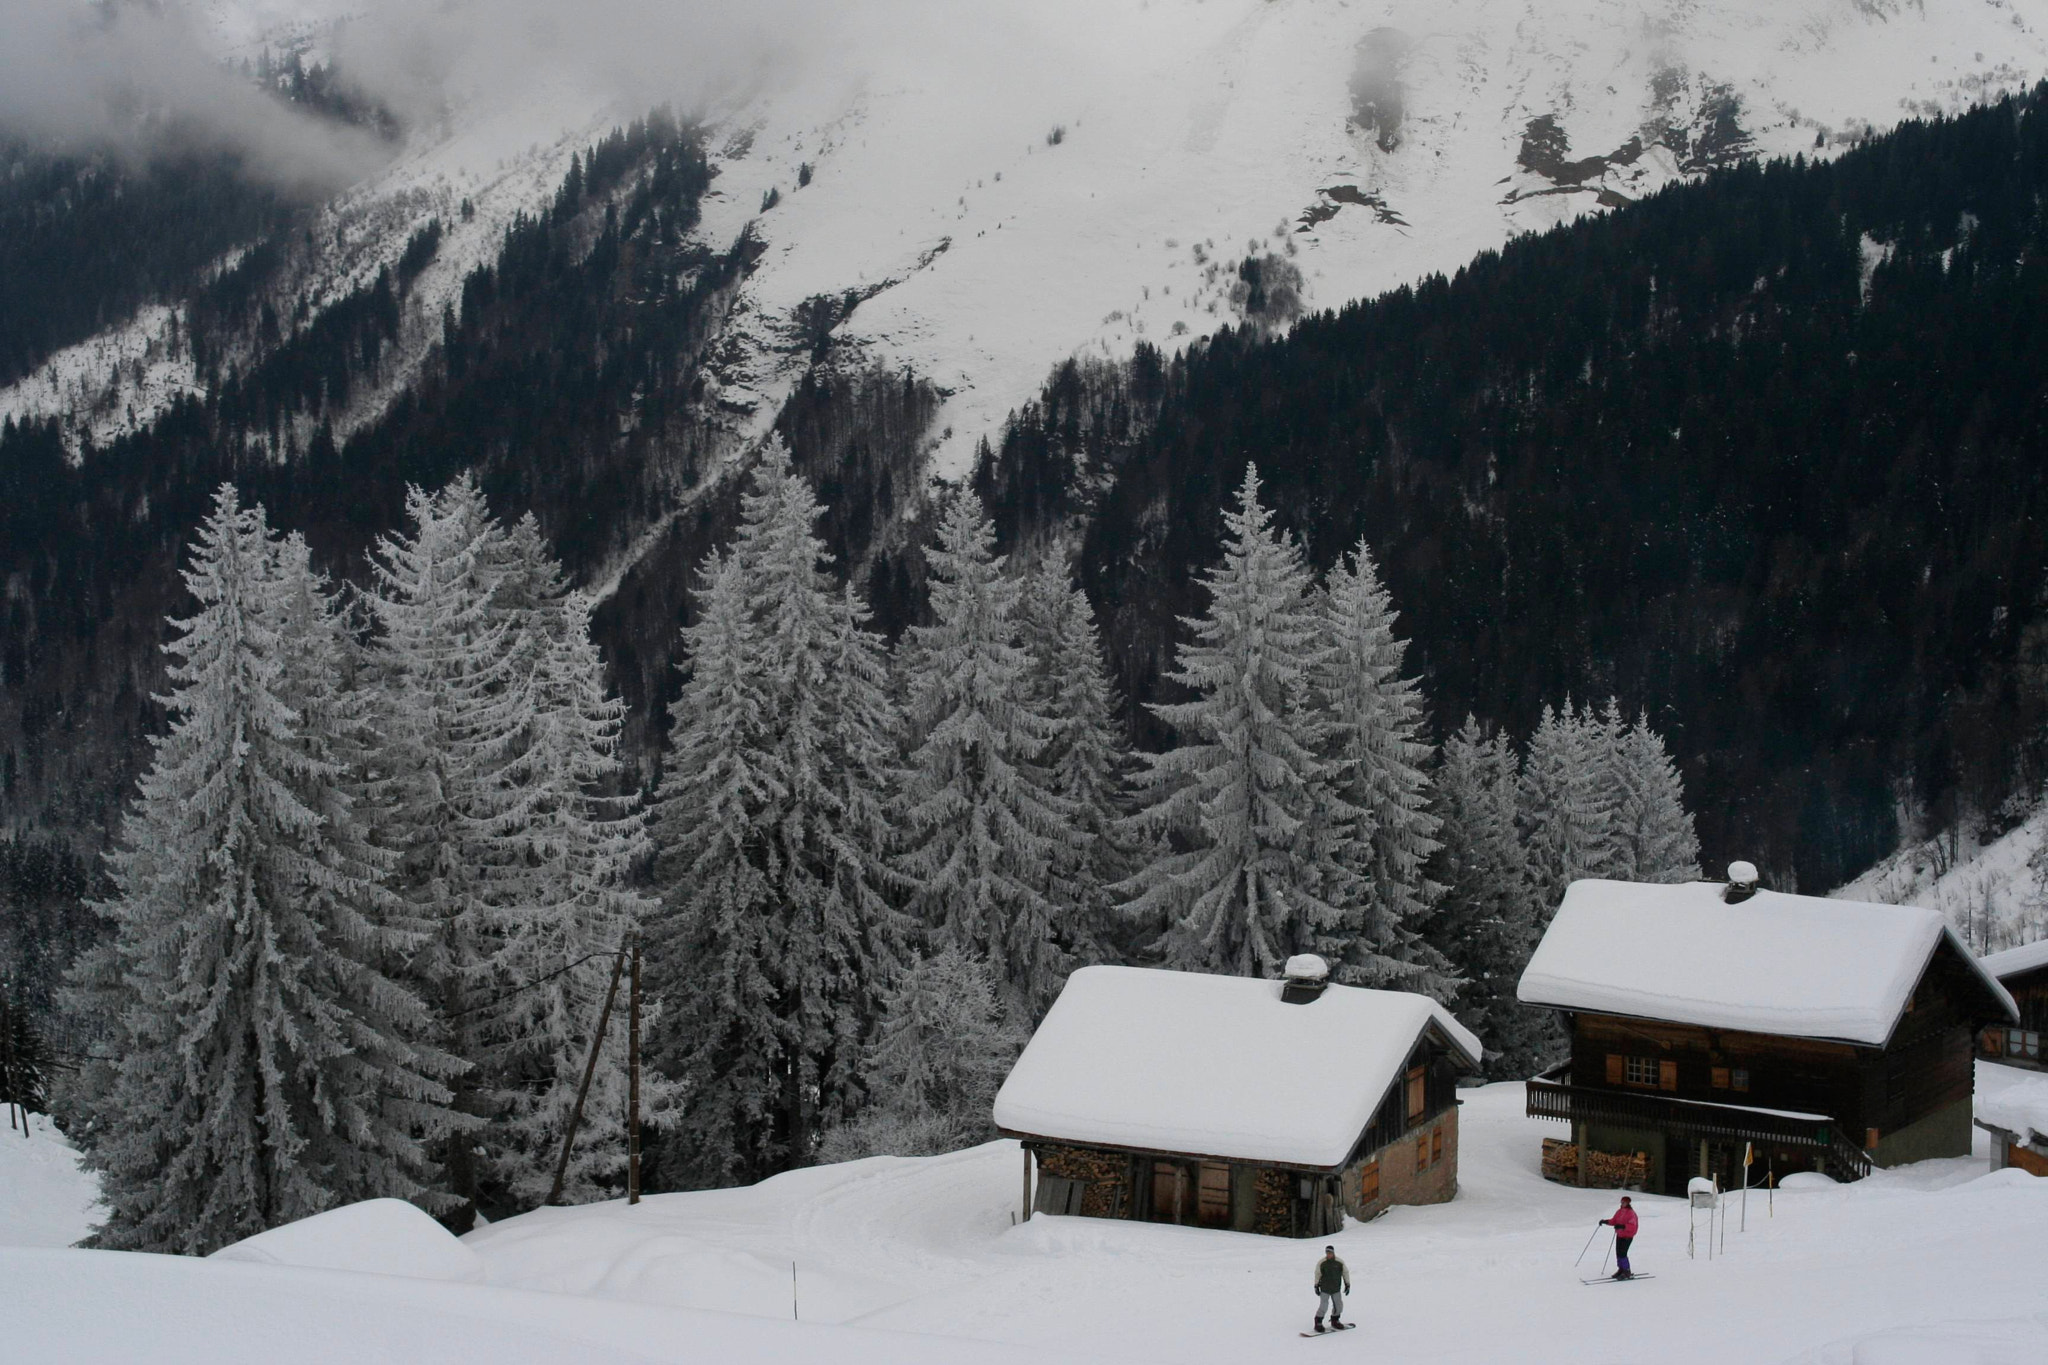 Photograph Grey winter day in Montriond, France by Alexis Penot on 500px